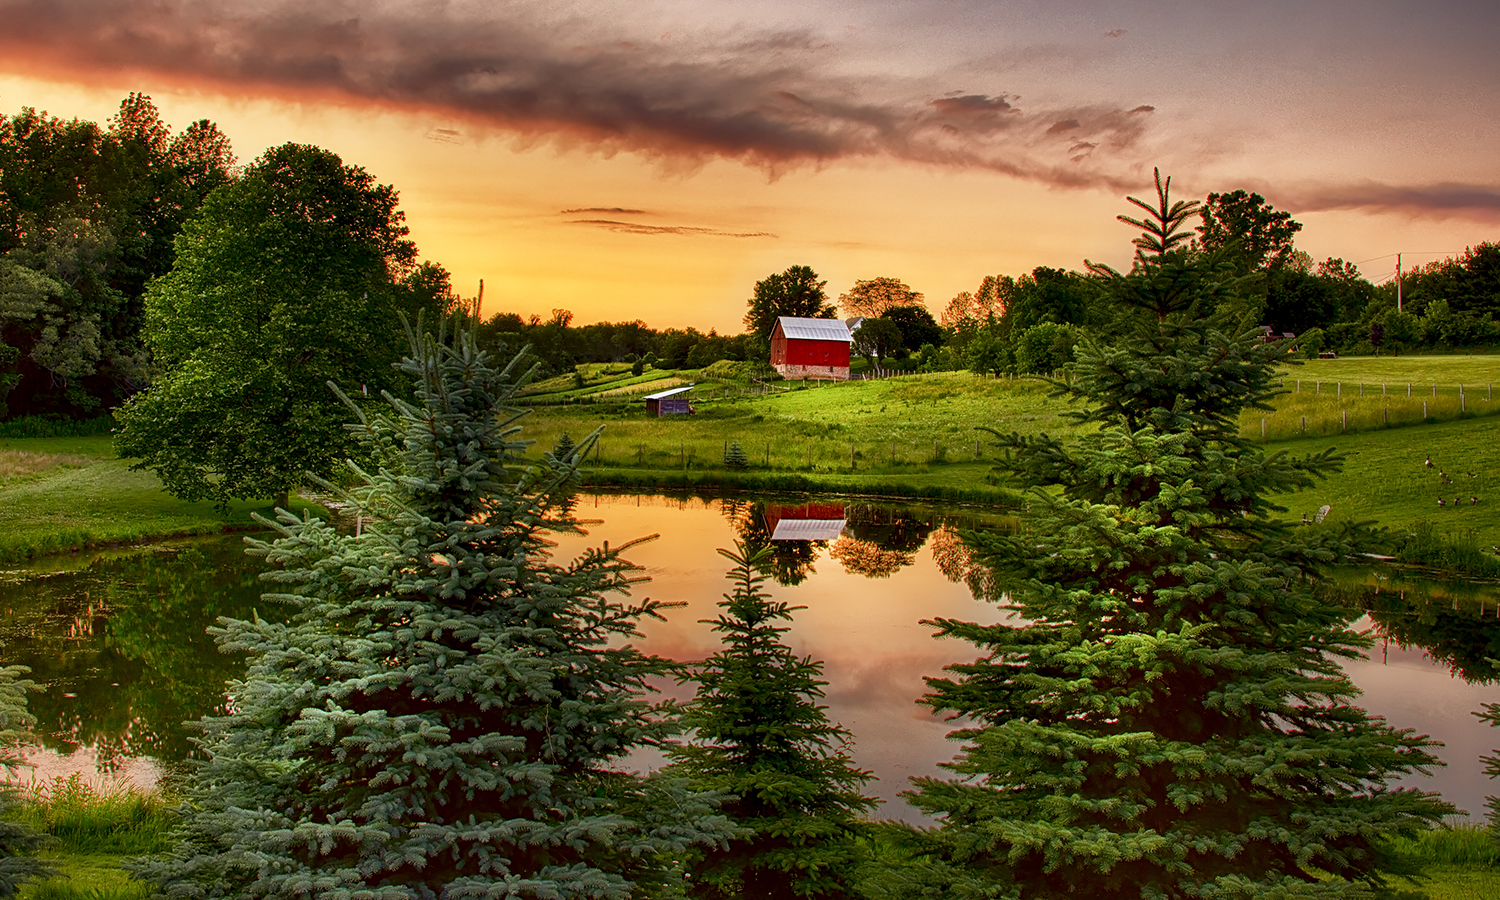 The sun sets over a farm in Shortsville, N.Y.